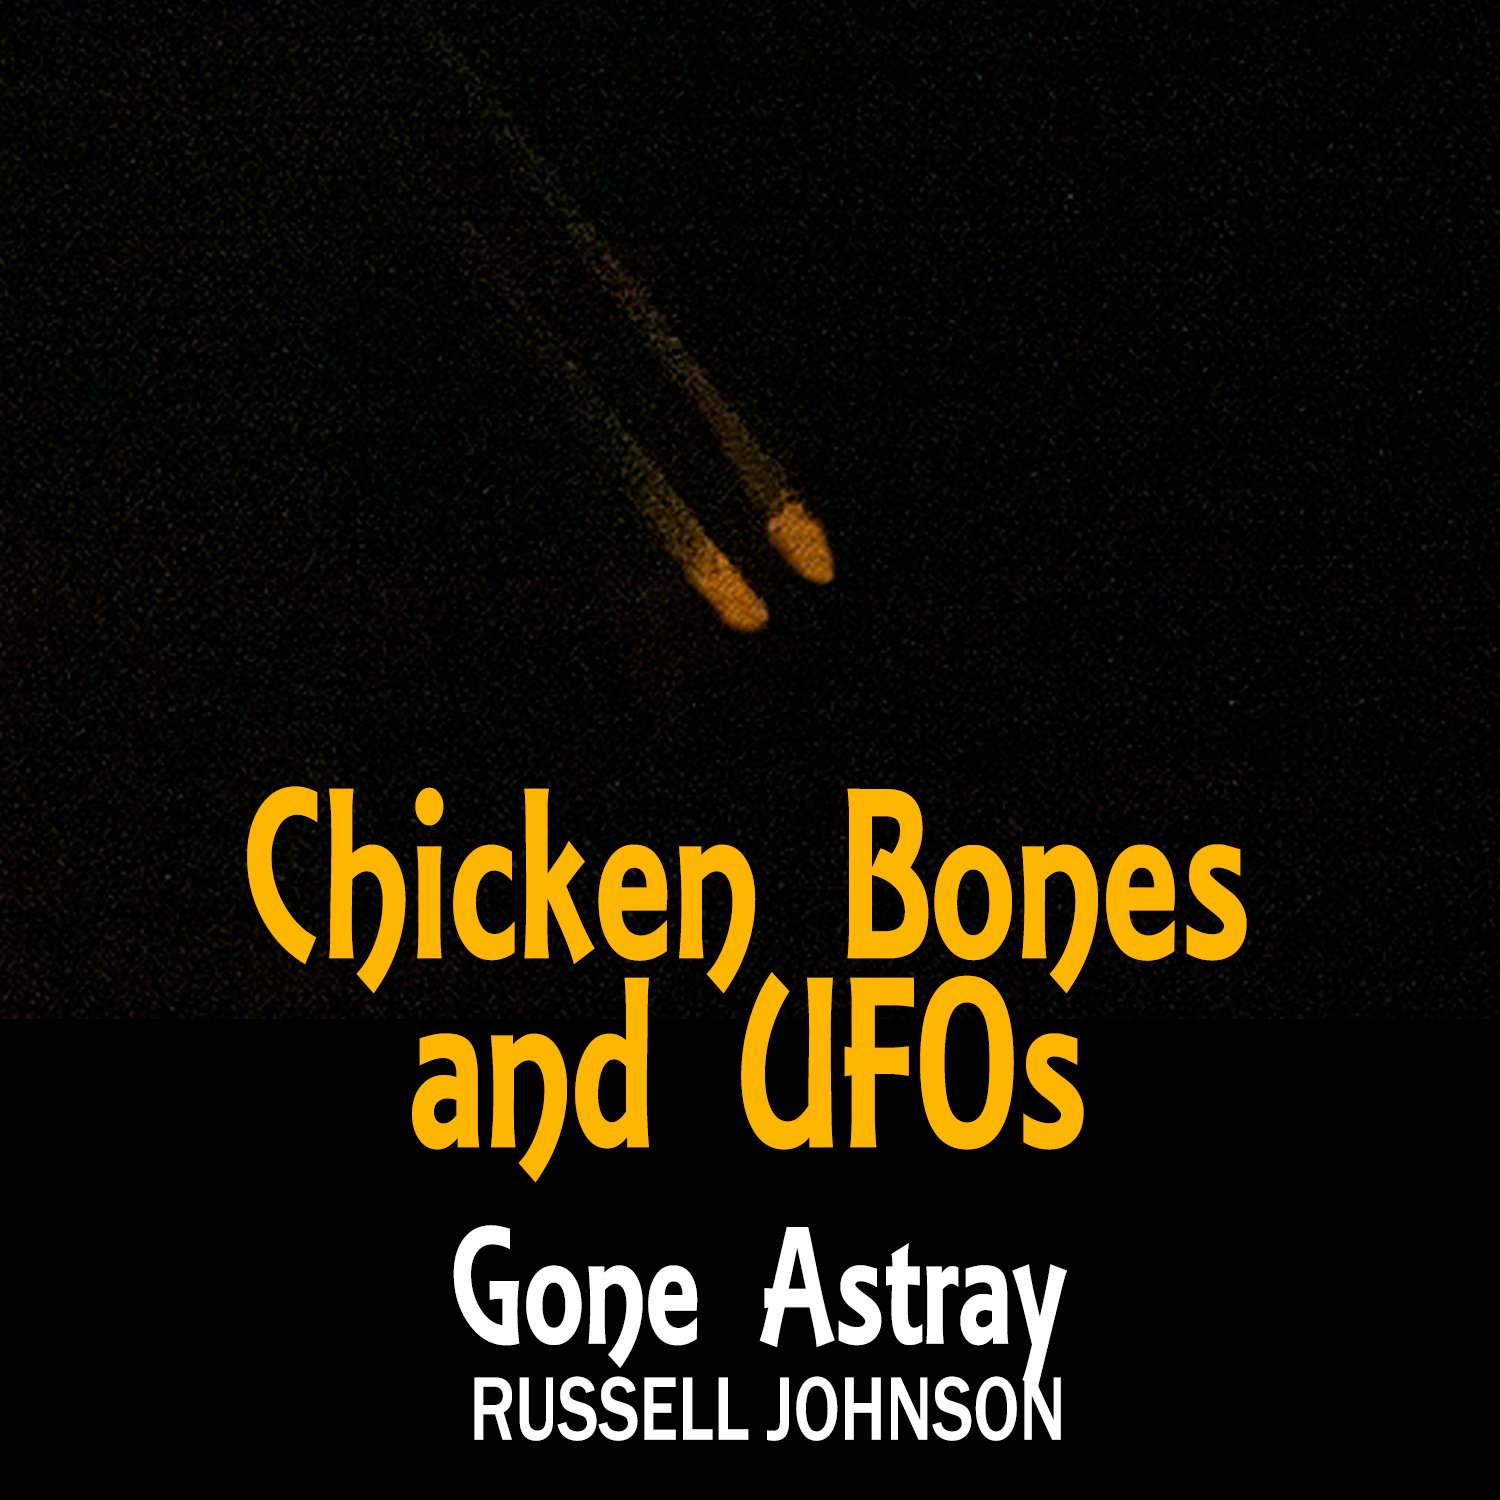 Gone Astray Podcast, Chicken Bones and UFOs